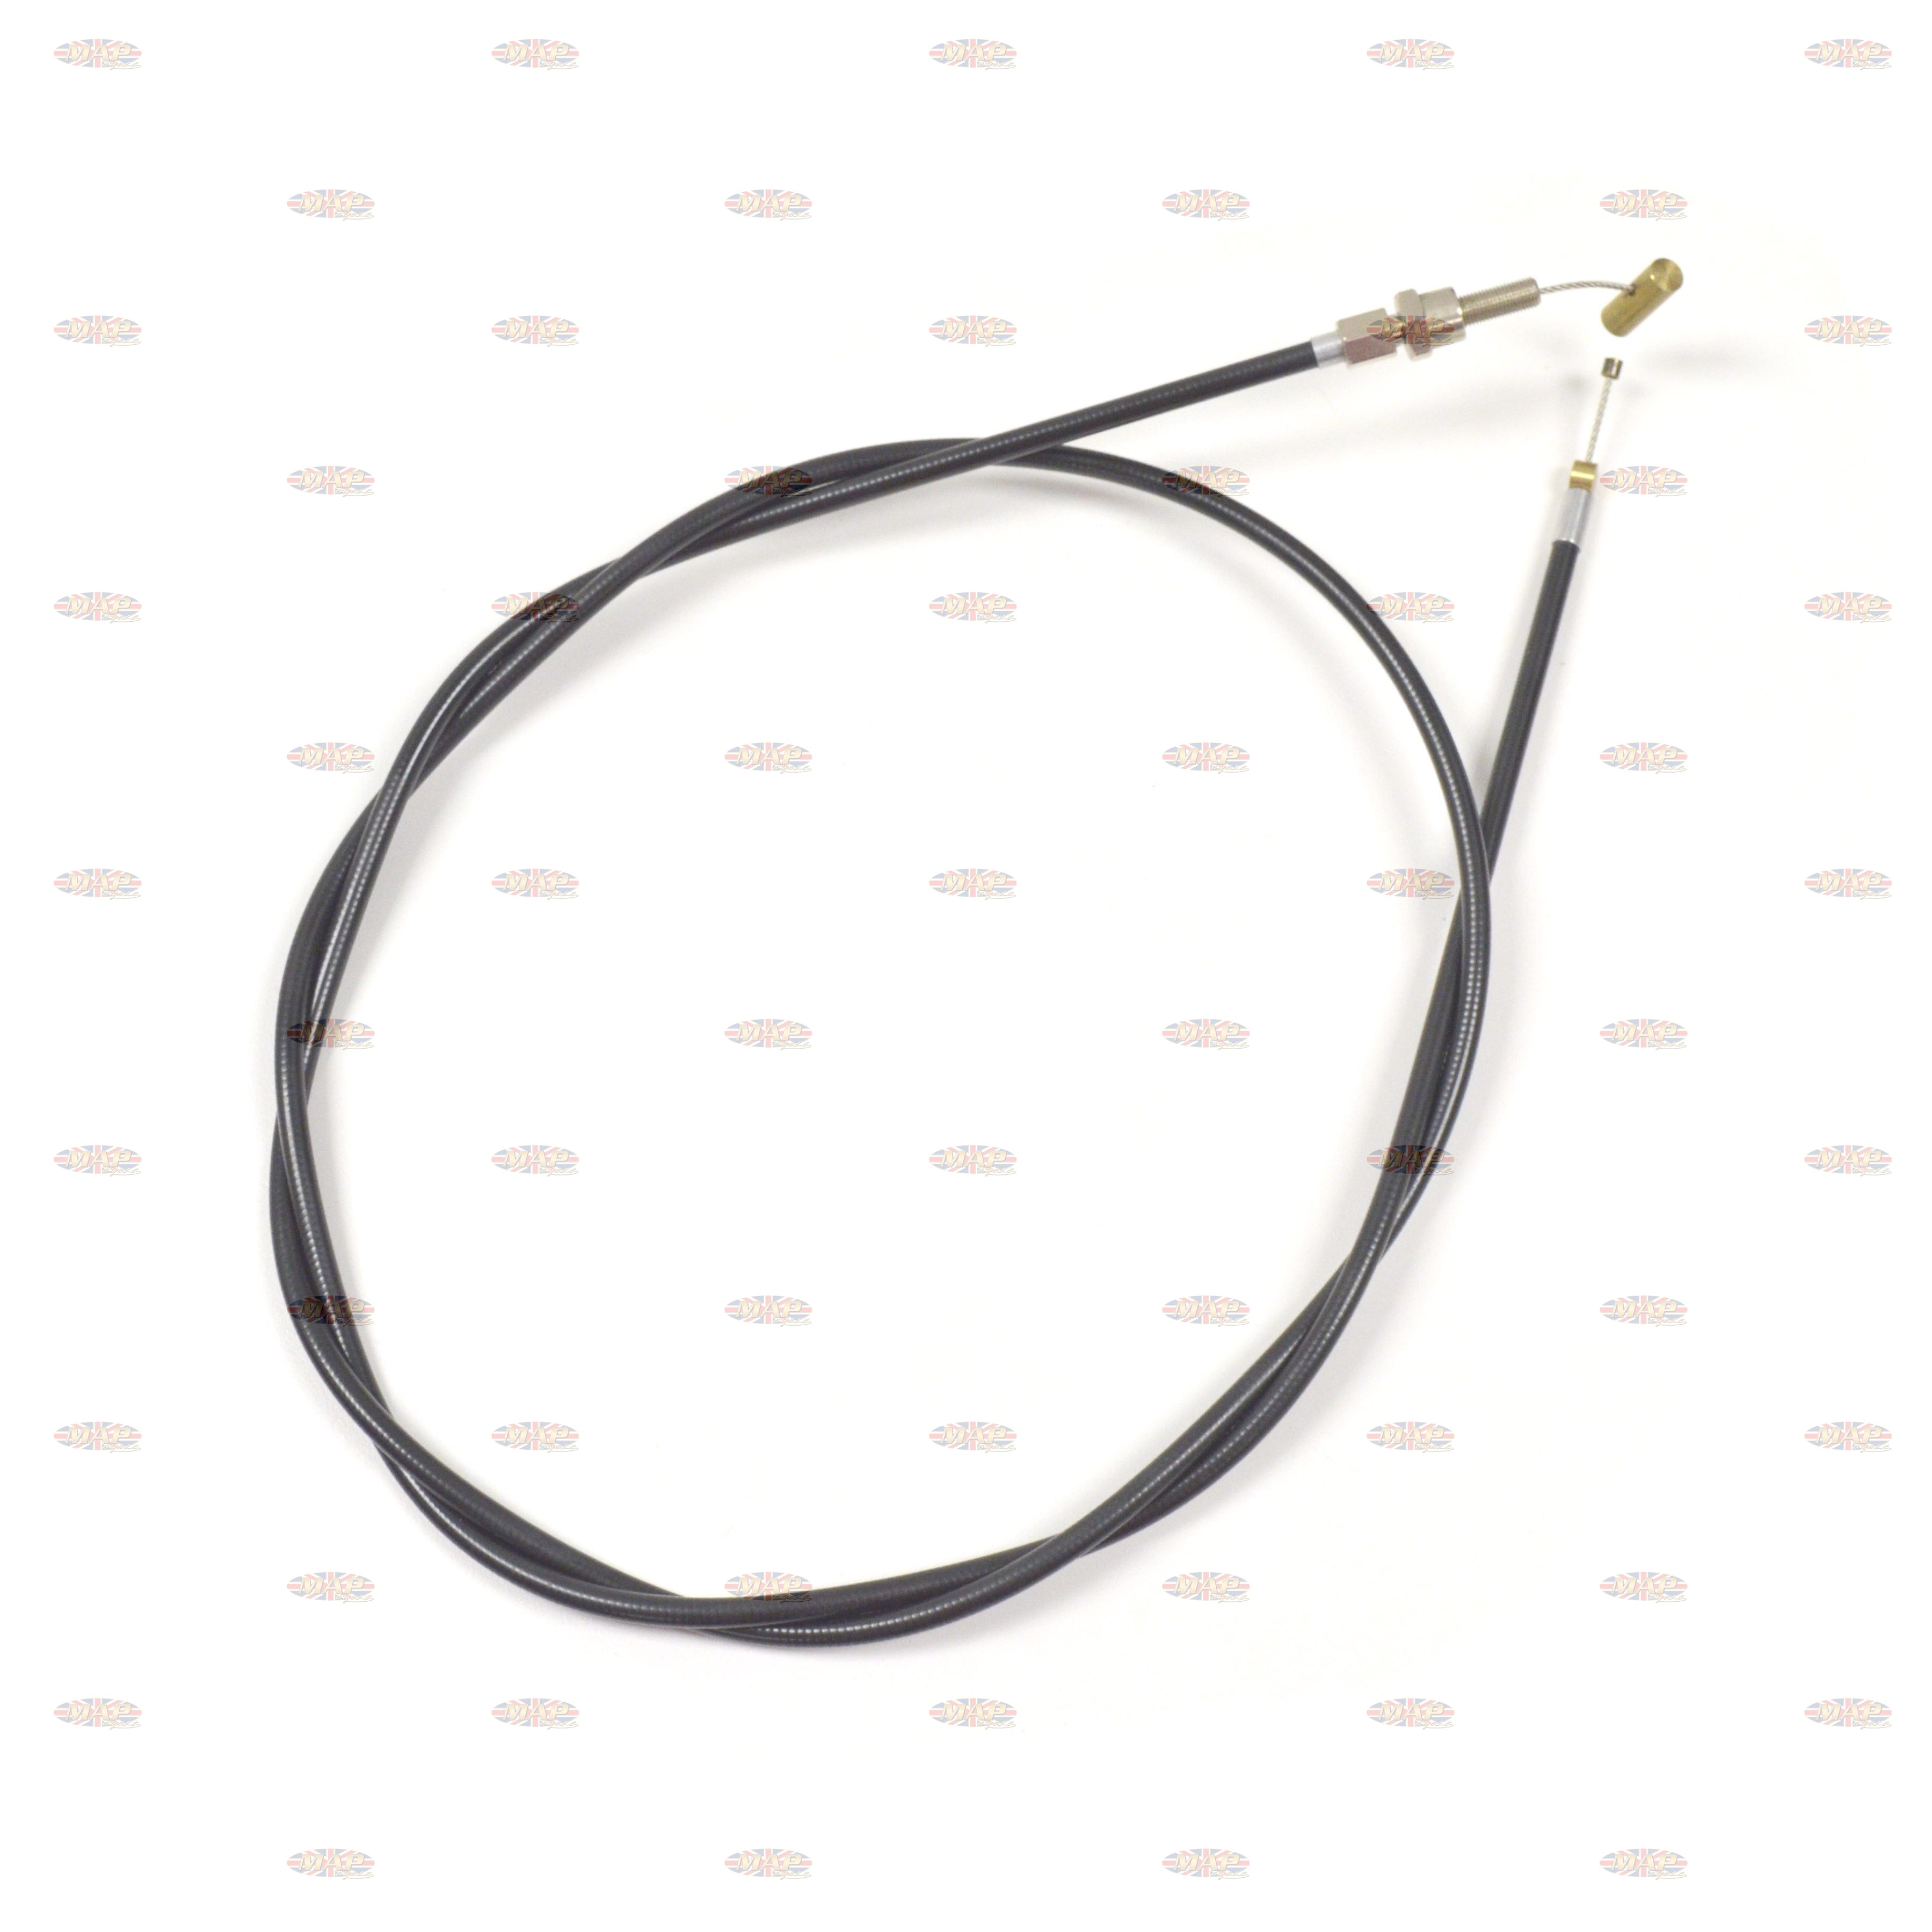 Triumph T150 Trident,  BSA A75 Rockett III Extra Long Throttle Cable  60-0890/L